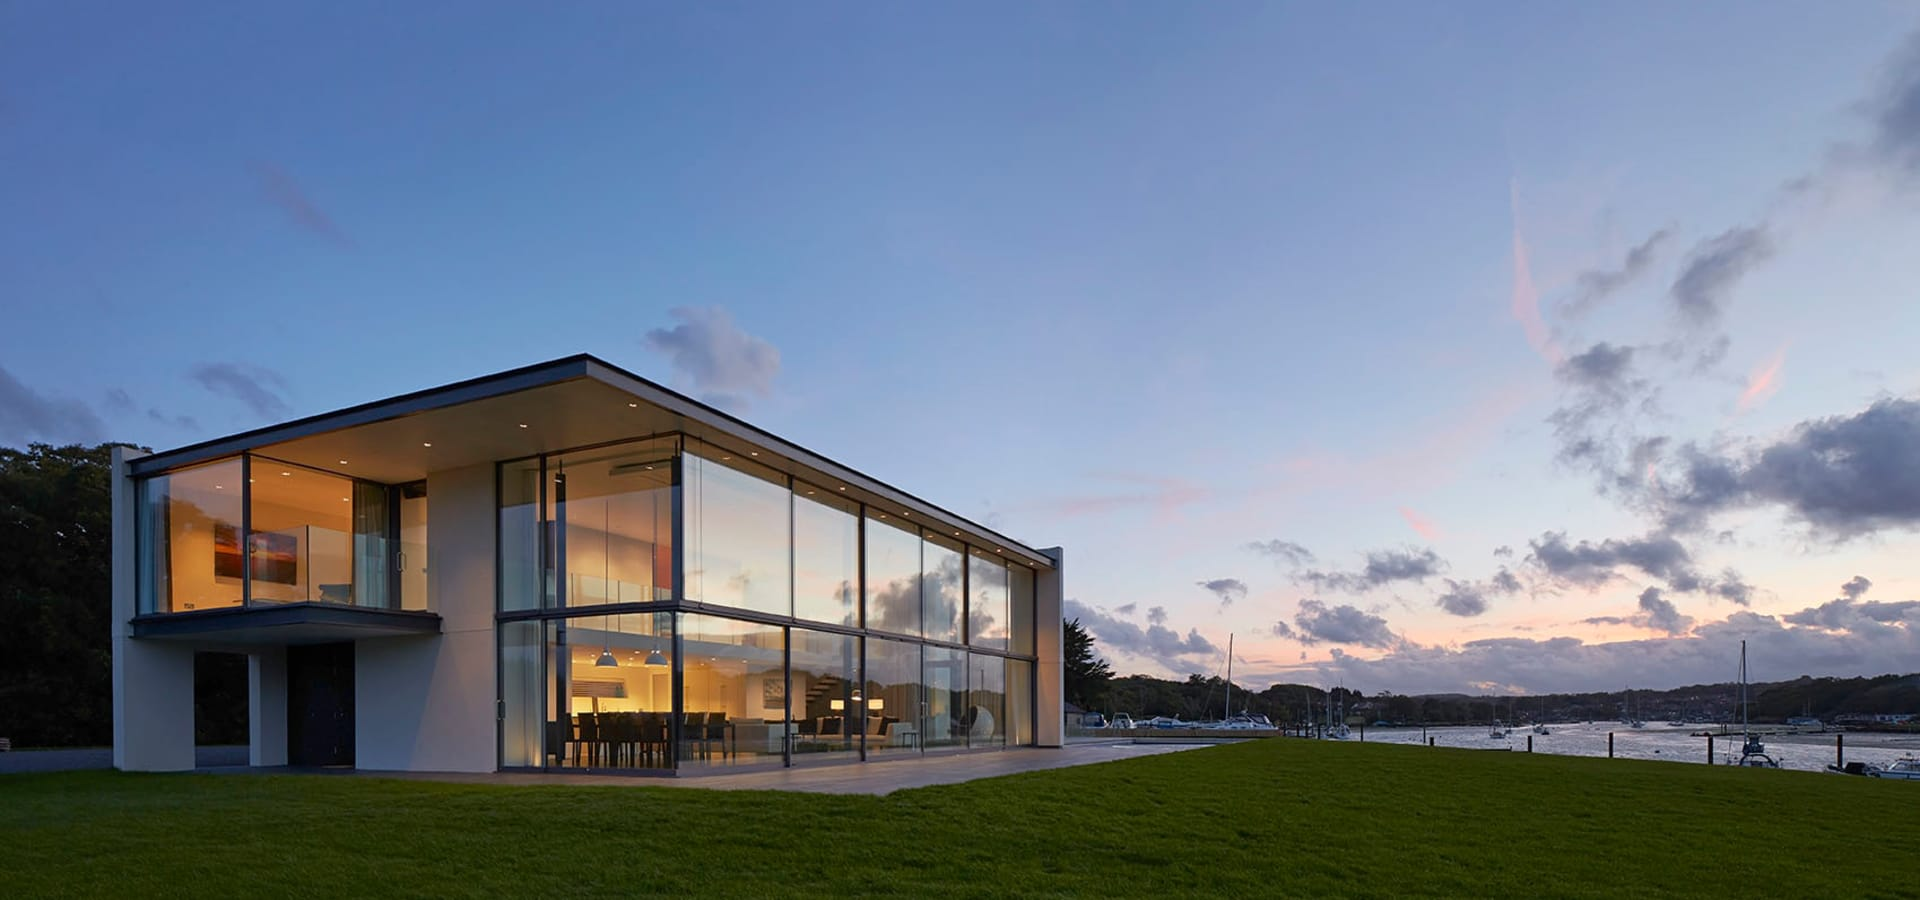 The Manser Practice Architects + Designers